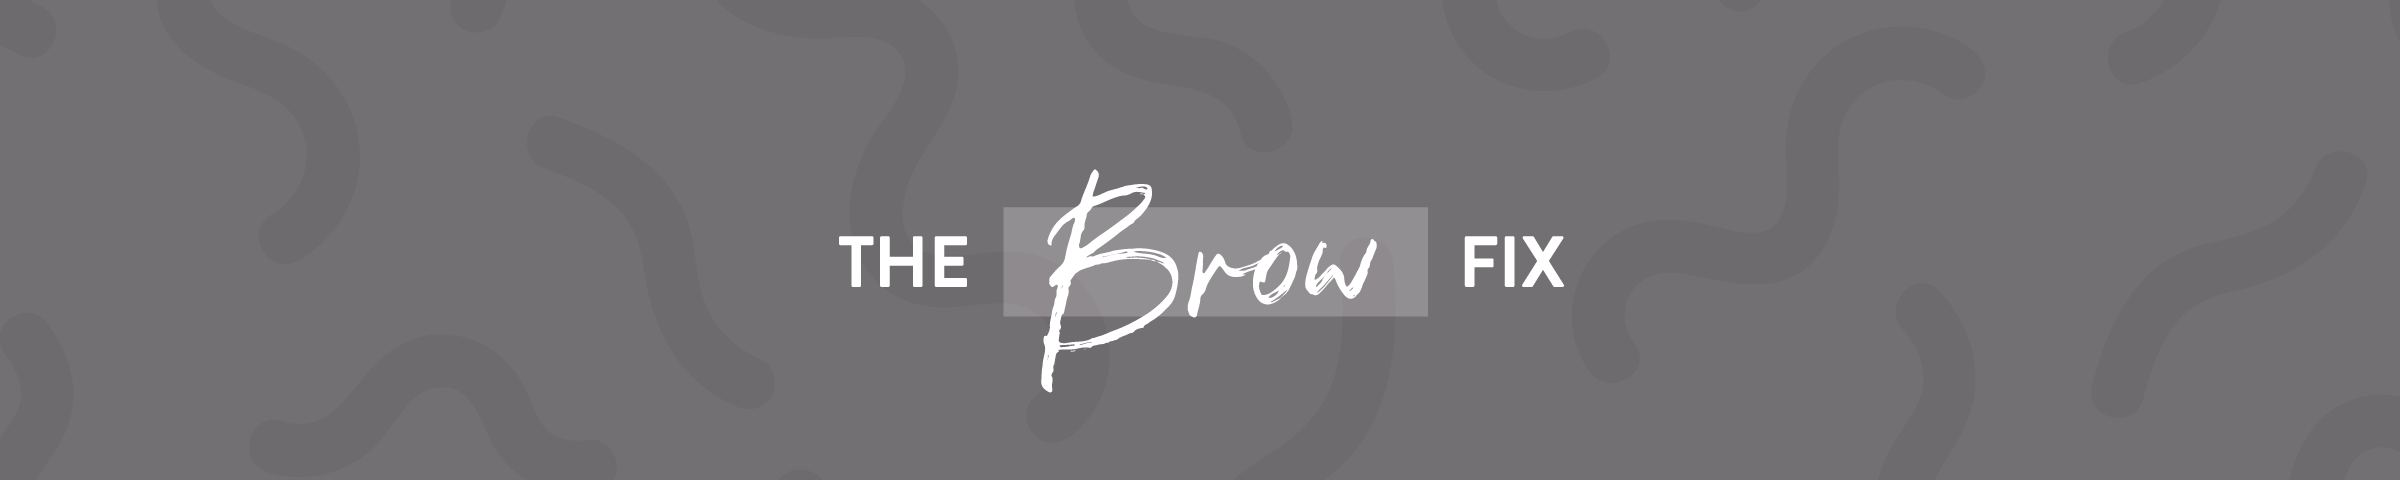 The Brow Fix